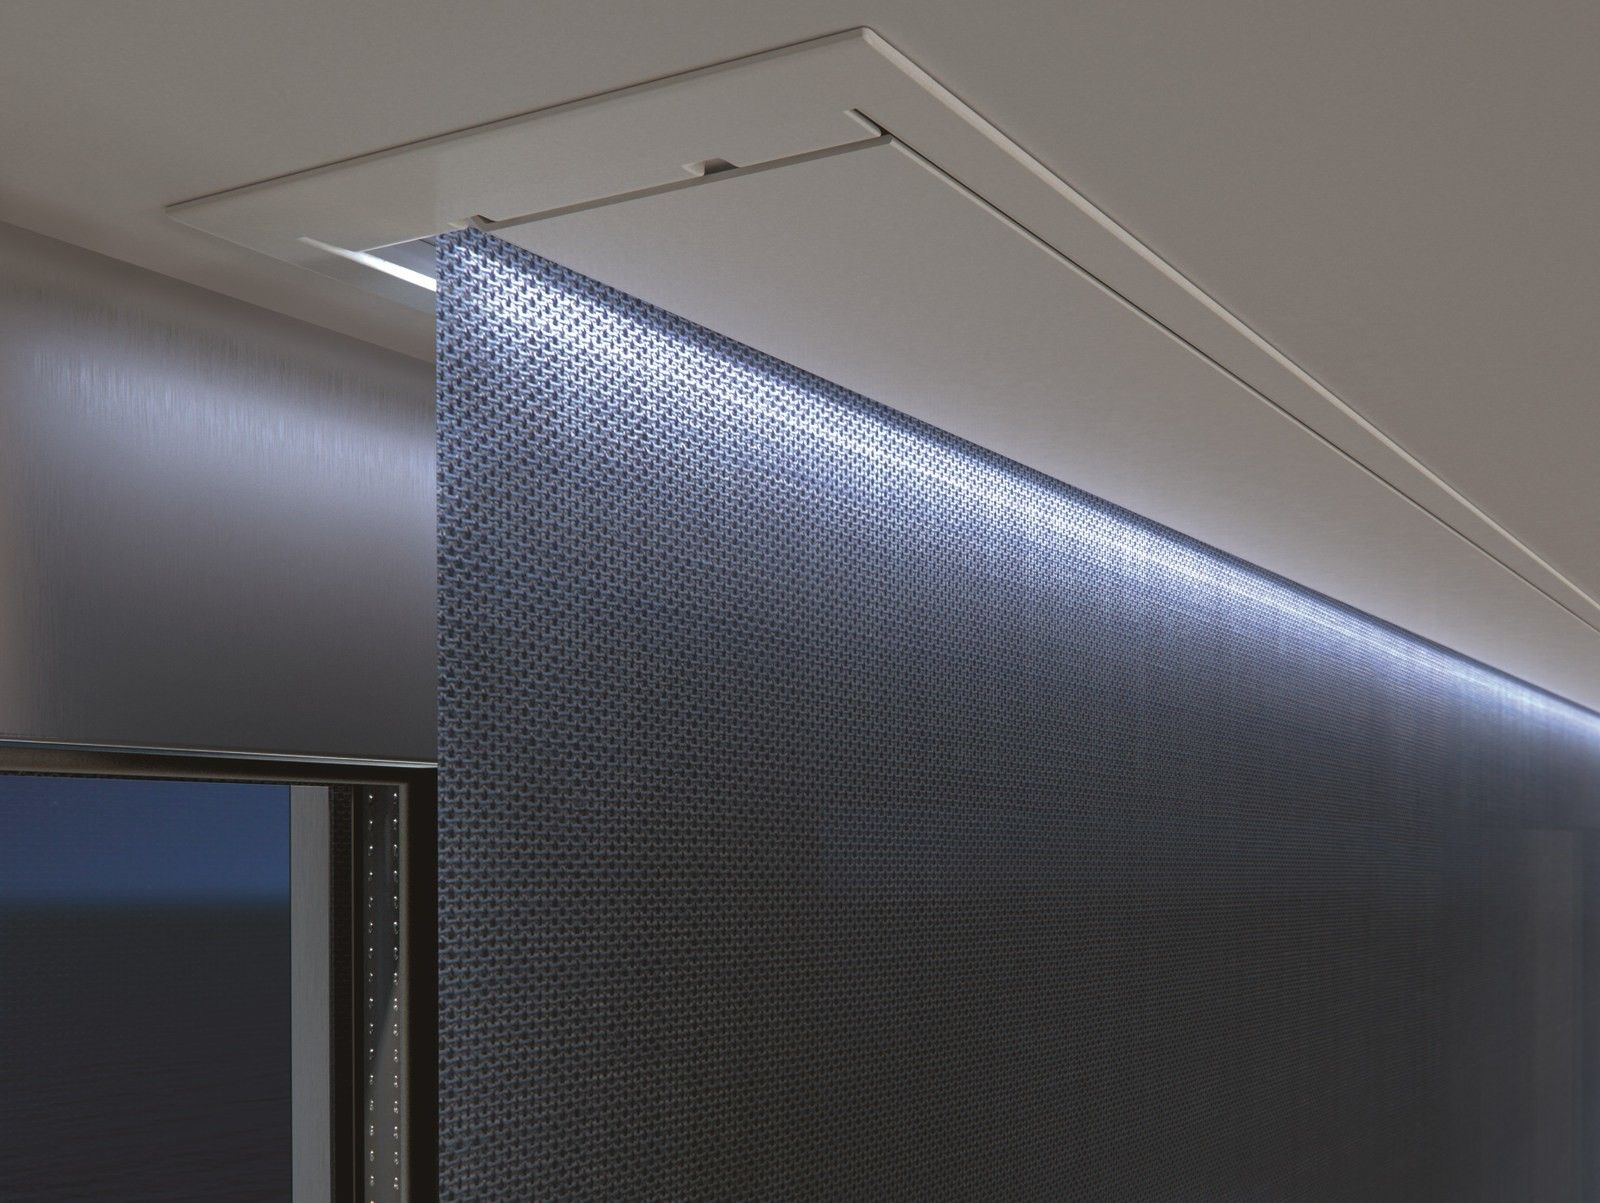 Electric Dimming Fabric Roller Blind Topbox By Mottura Avec